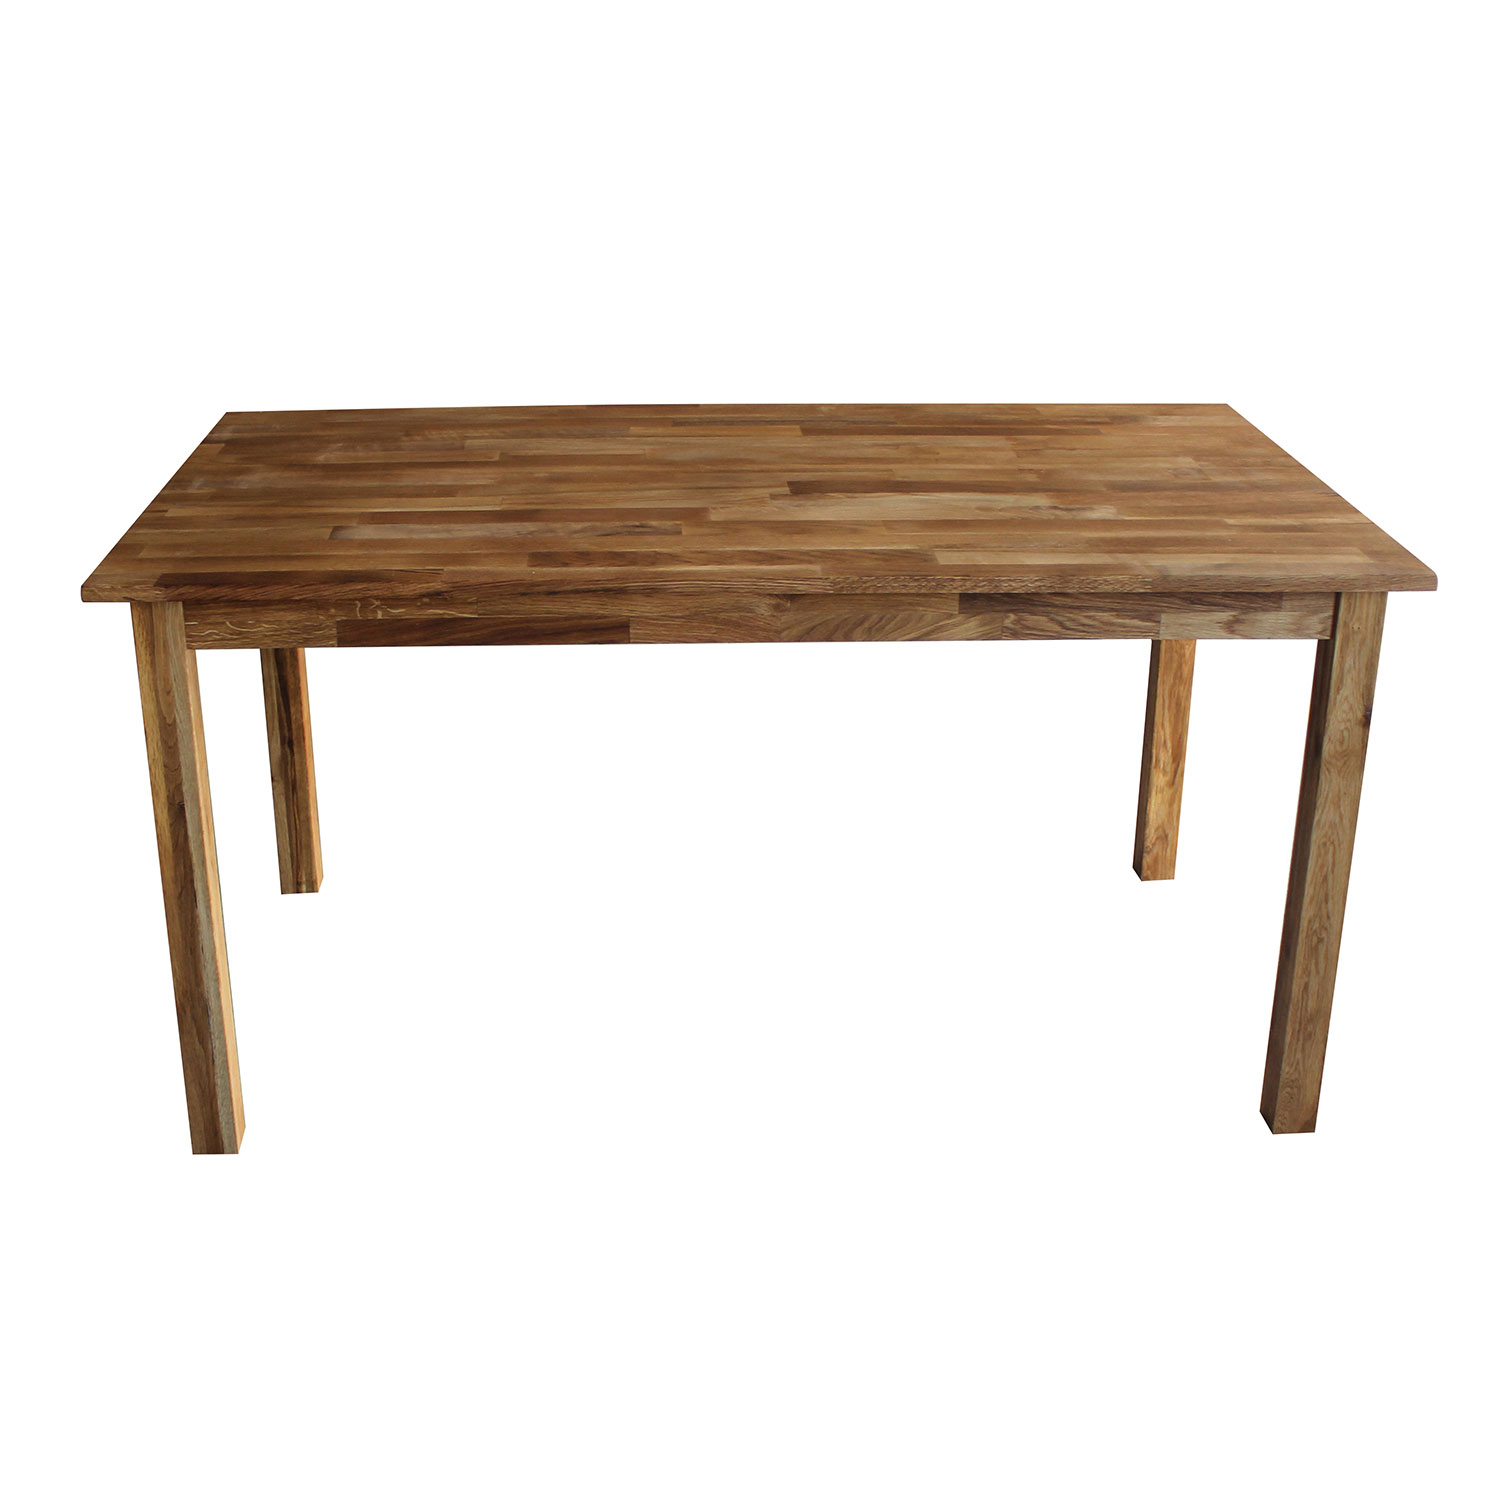 Charles Bentley Solid Oak 6-8 Seater Wooden Dining Table